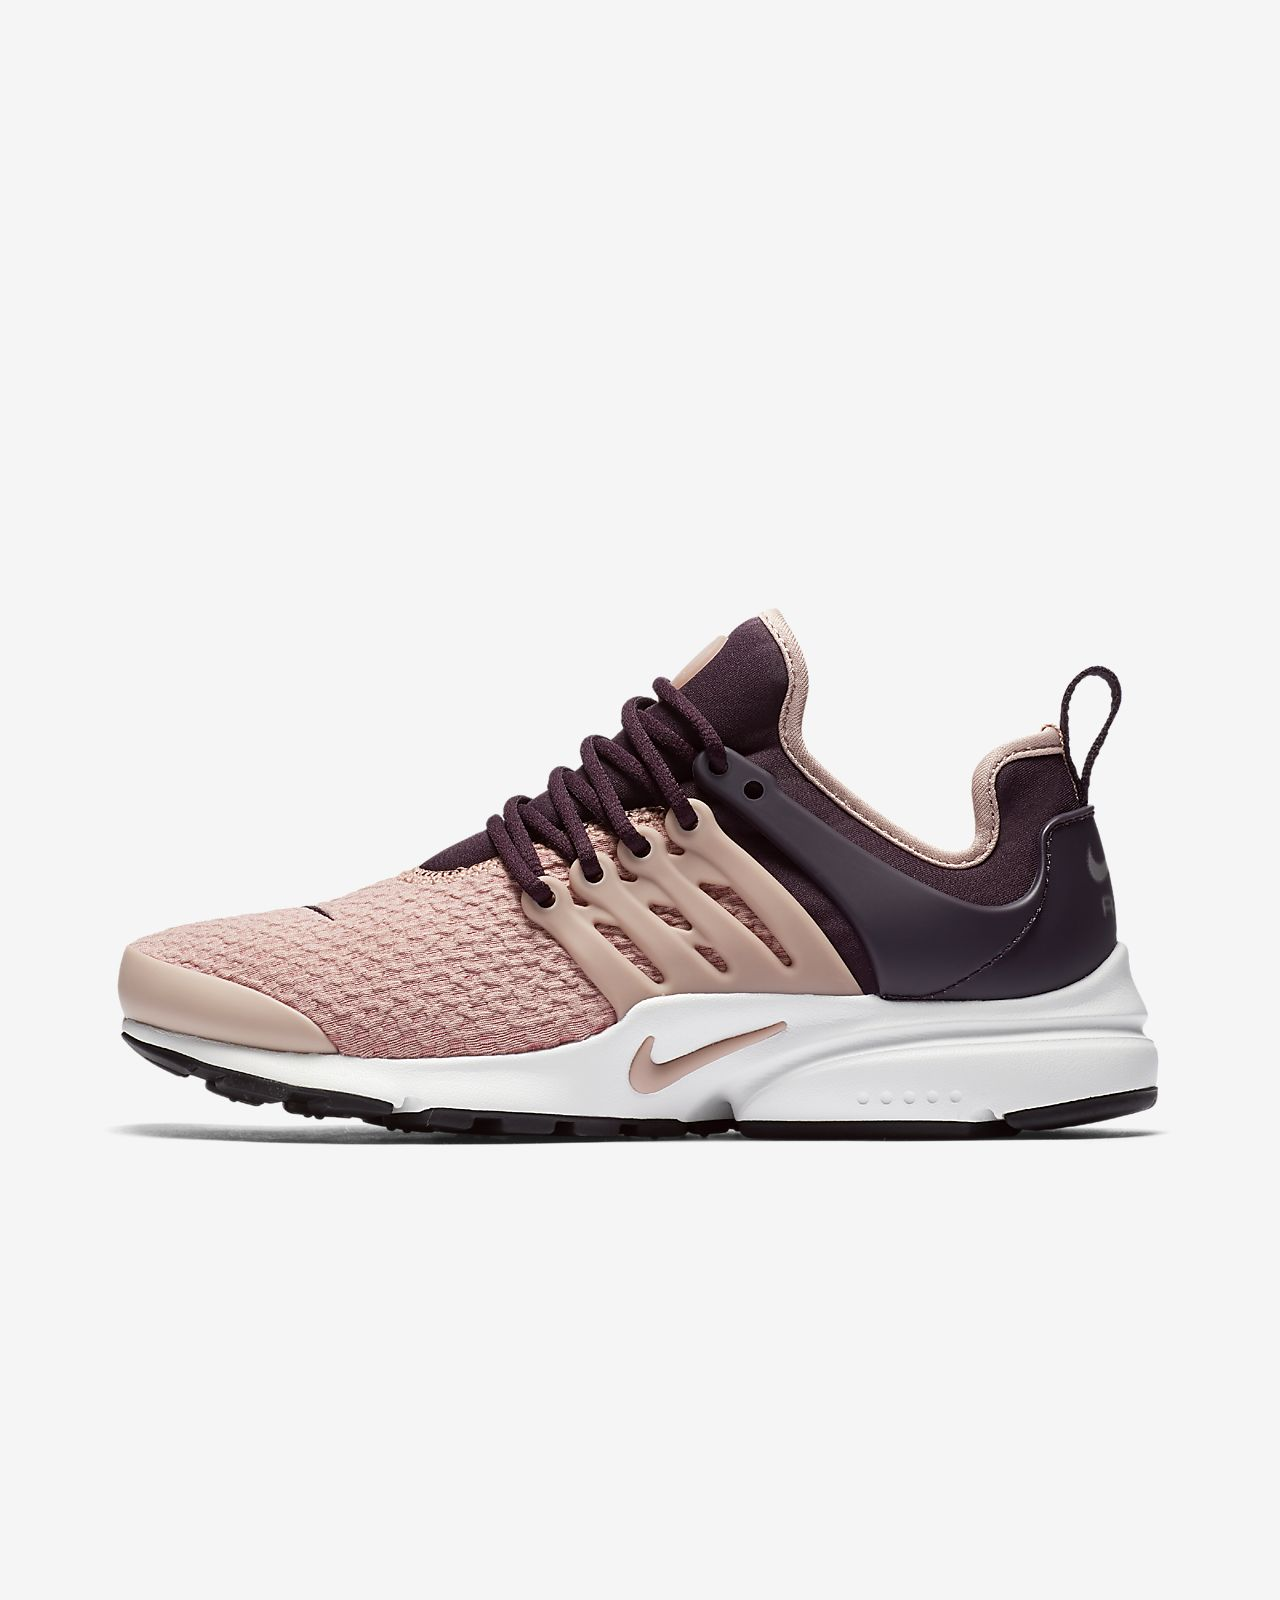 premium selection 7b052 4b180 Nike Air Presto Women's Shoe